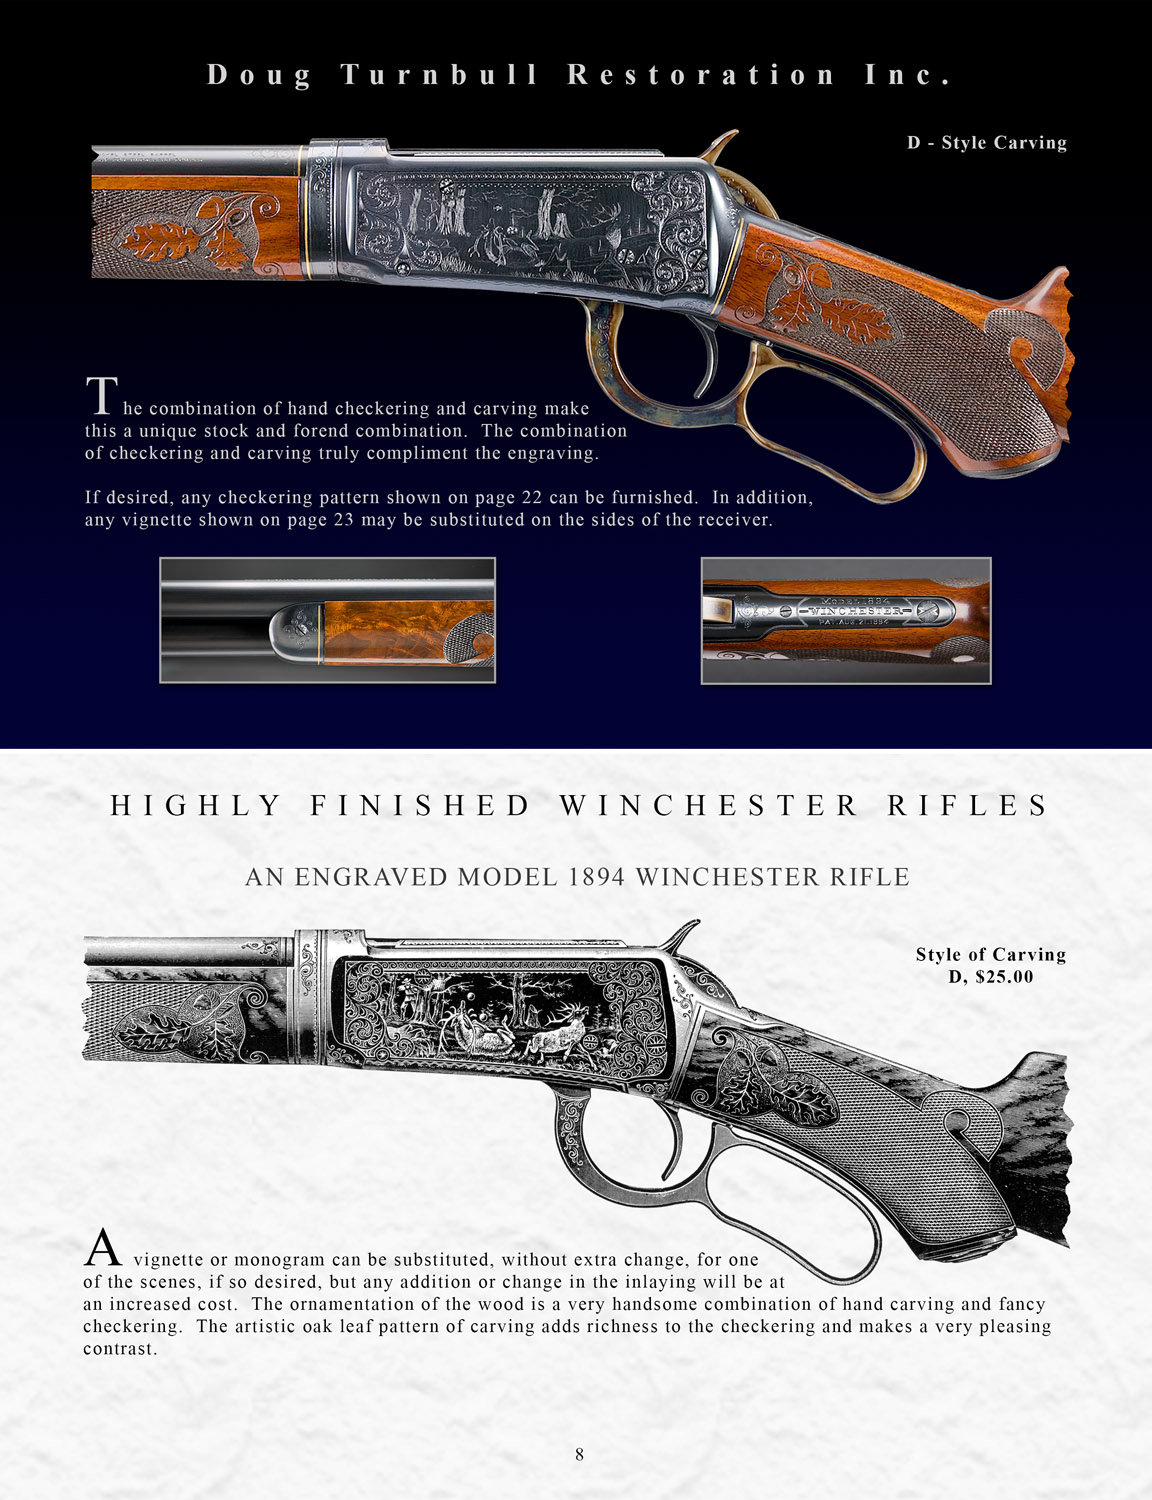 Page from the Winchester Highly Finished Firearms catalog, by Turnbull Restoration of Bloomfield, NY